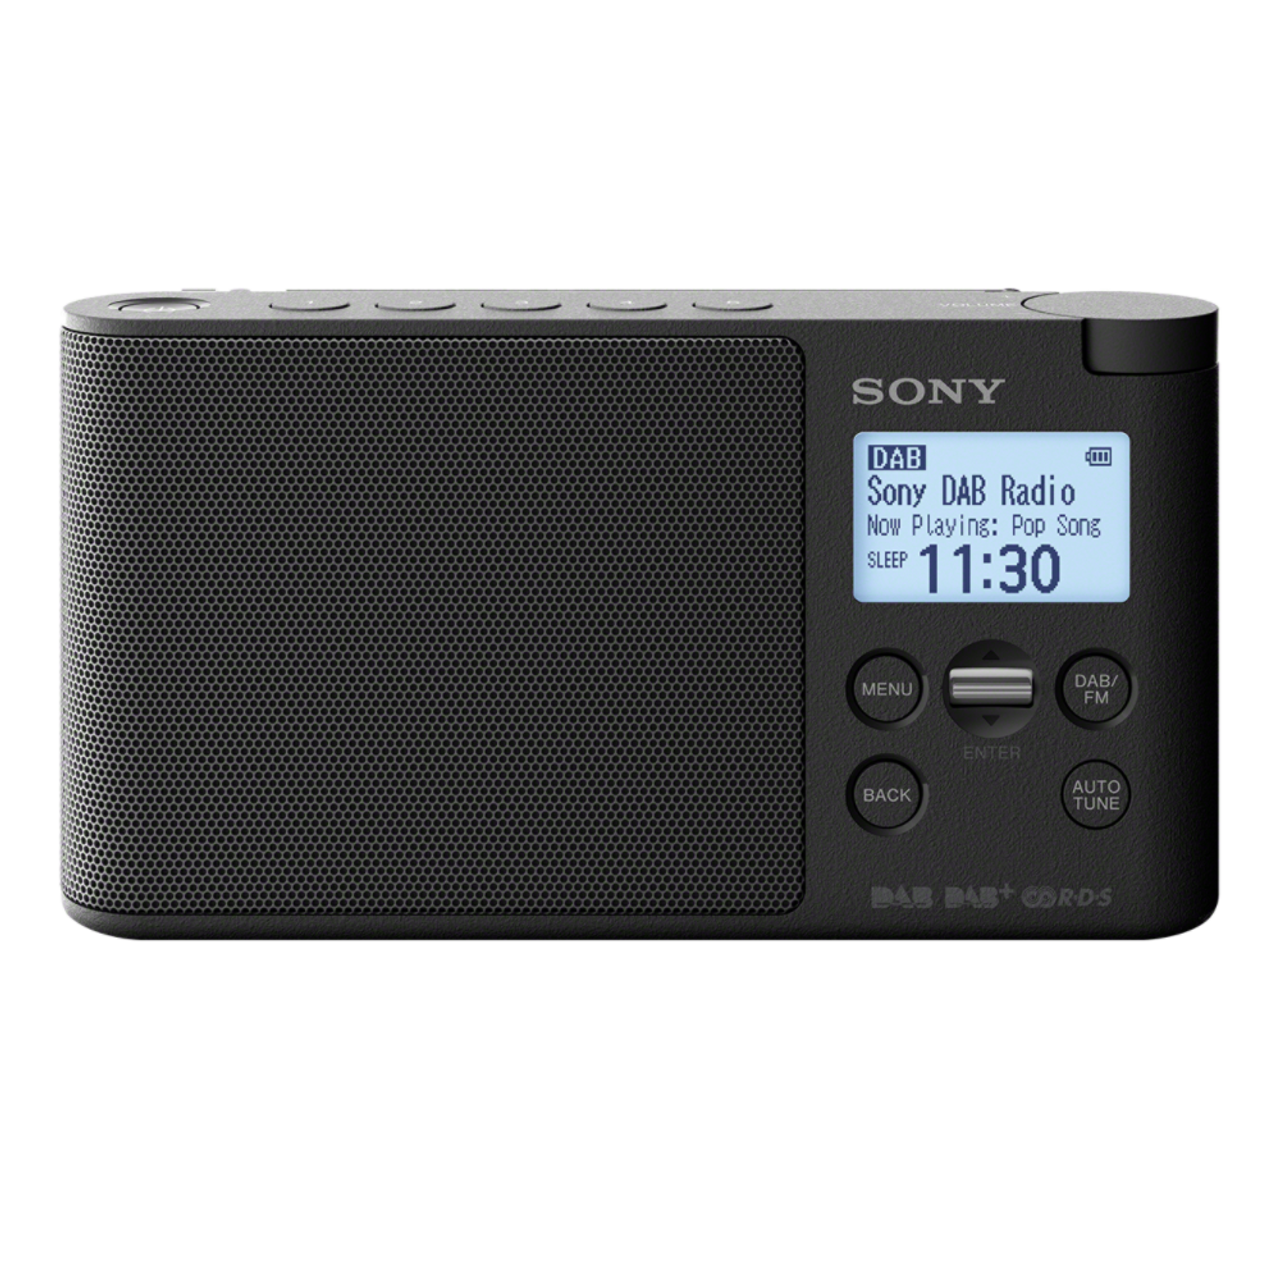 sony xdr s41d portable dab dab radio black ask outlets ltd. Black Bedroom Furniture Sets. Home Design Ideas